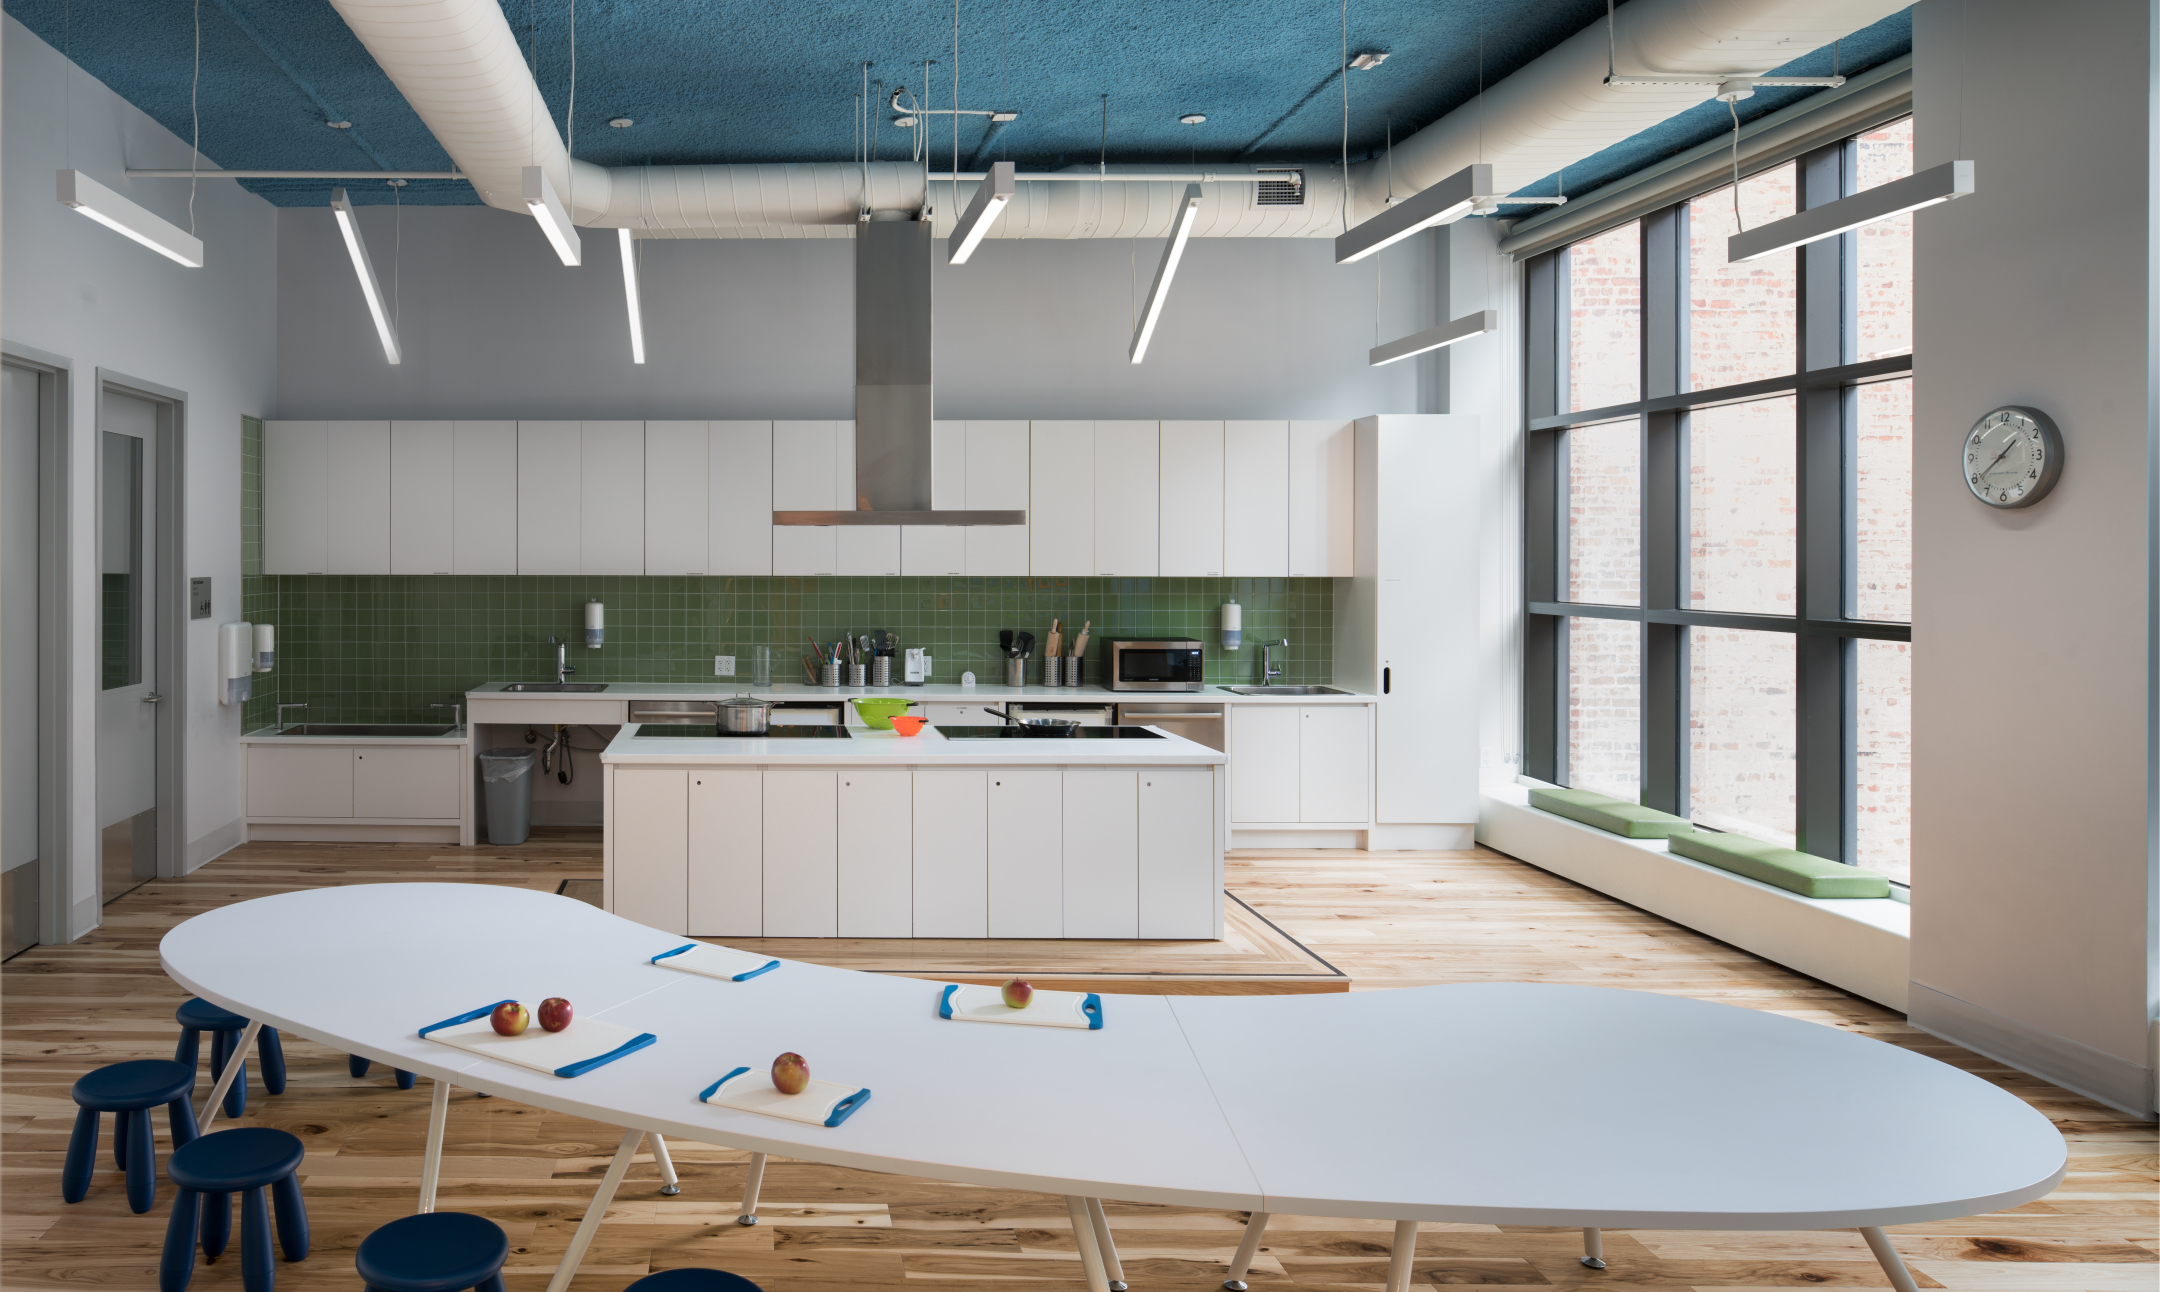 Avenues: New York - ELC Teaching Kitchen